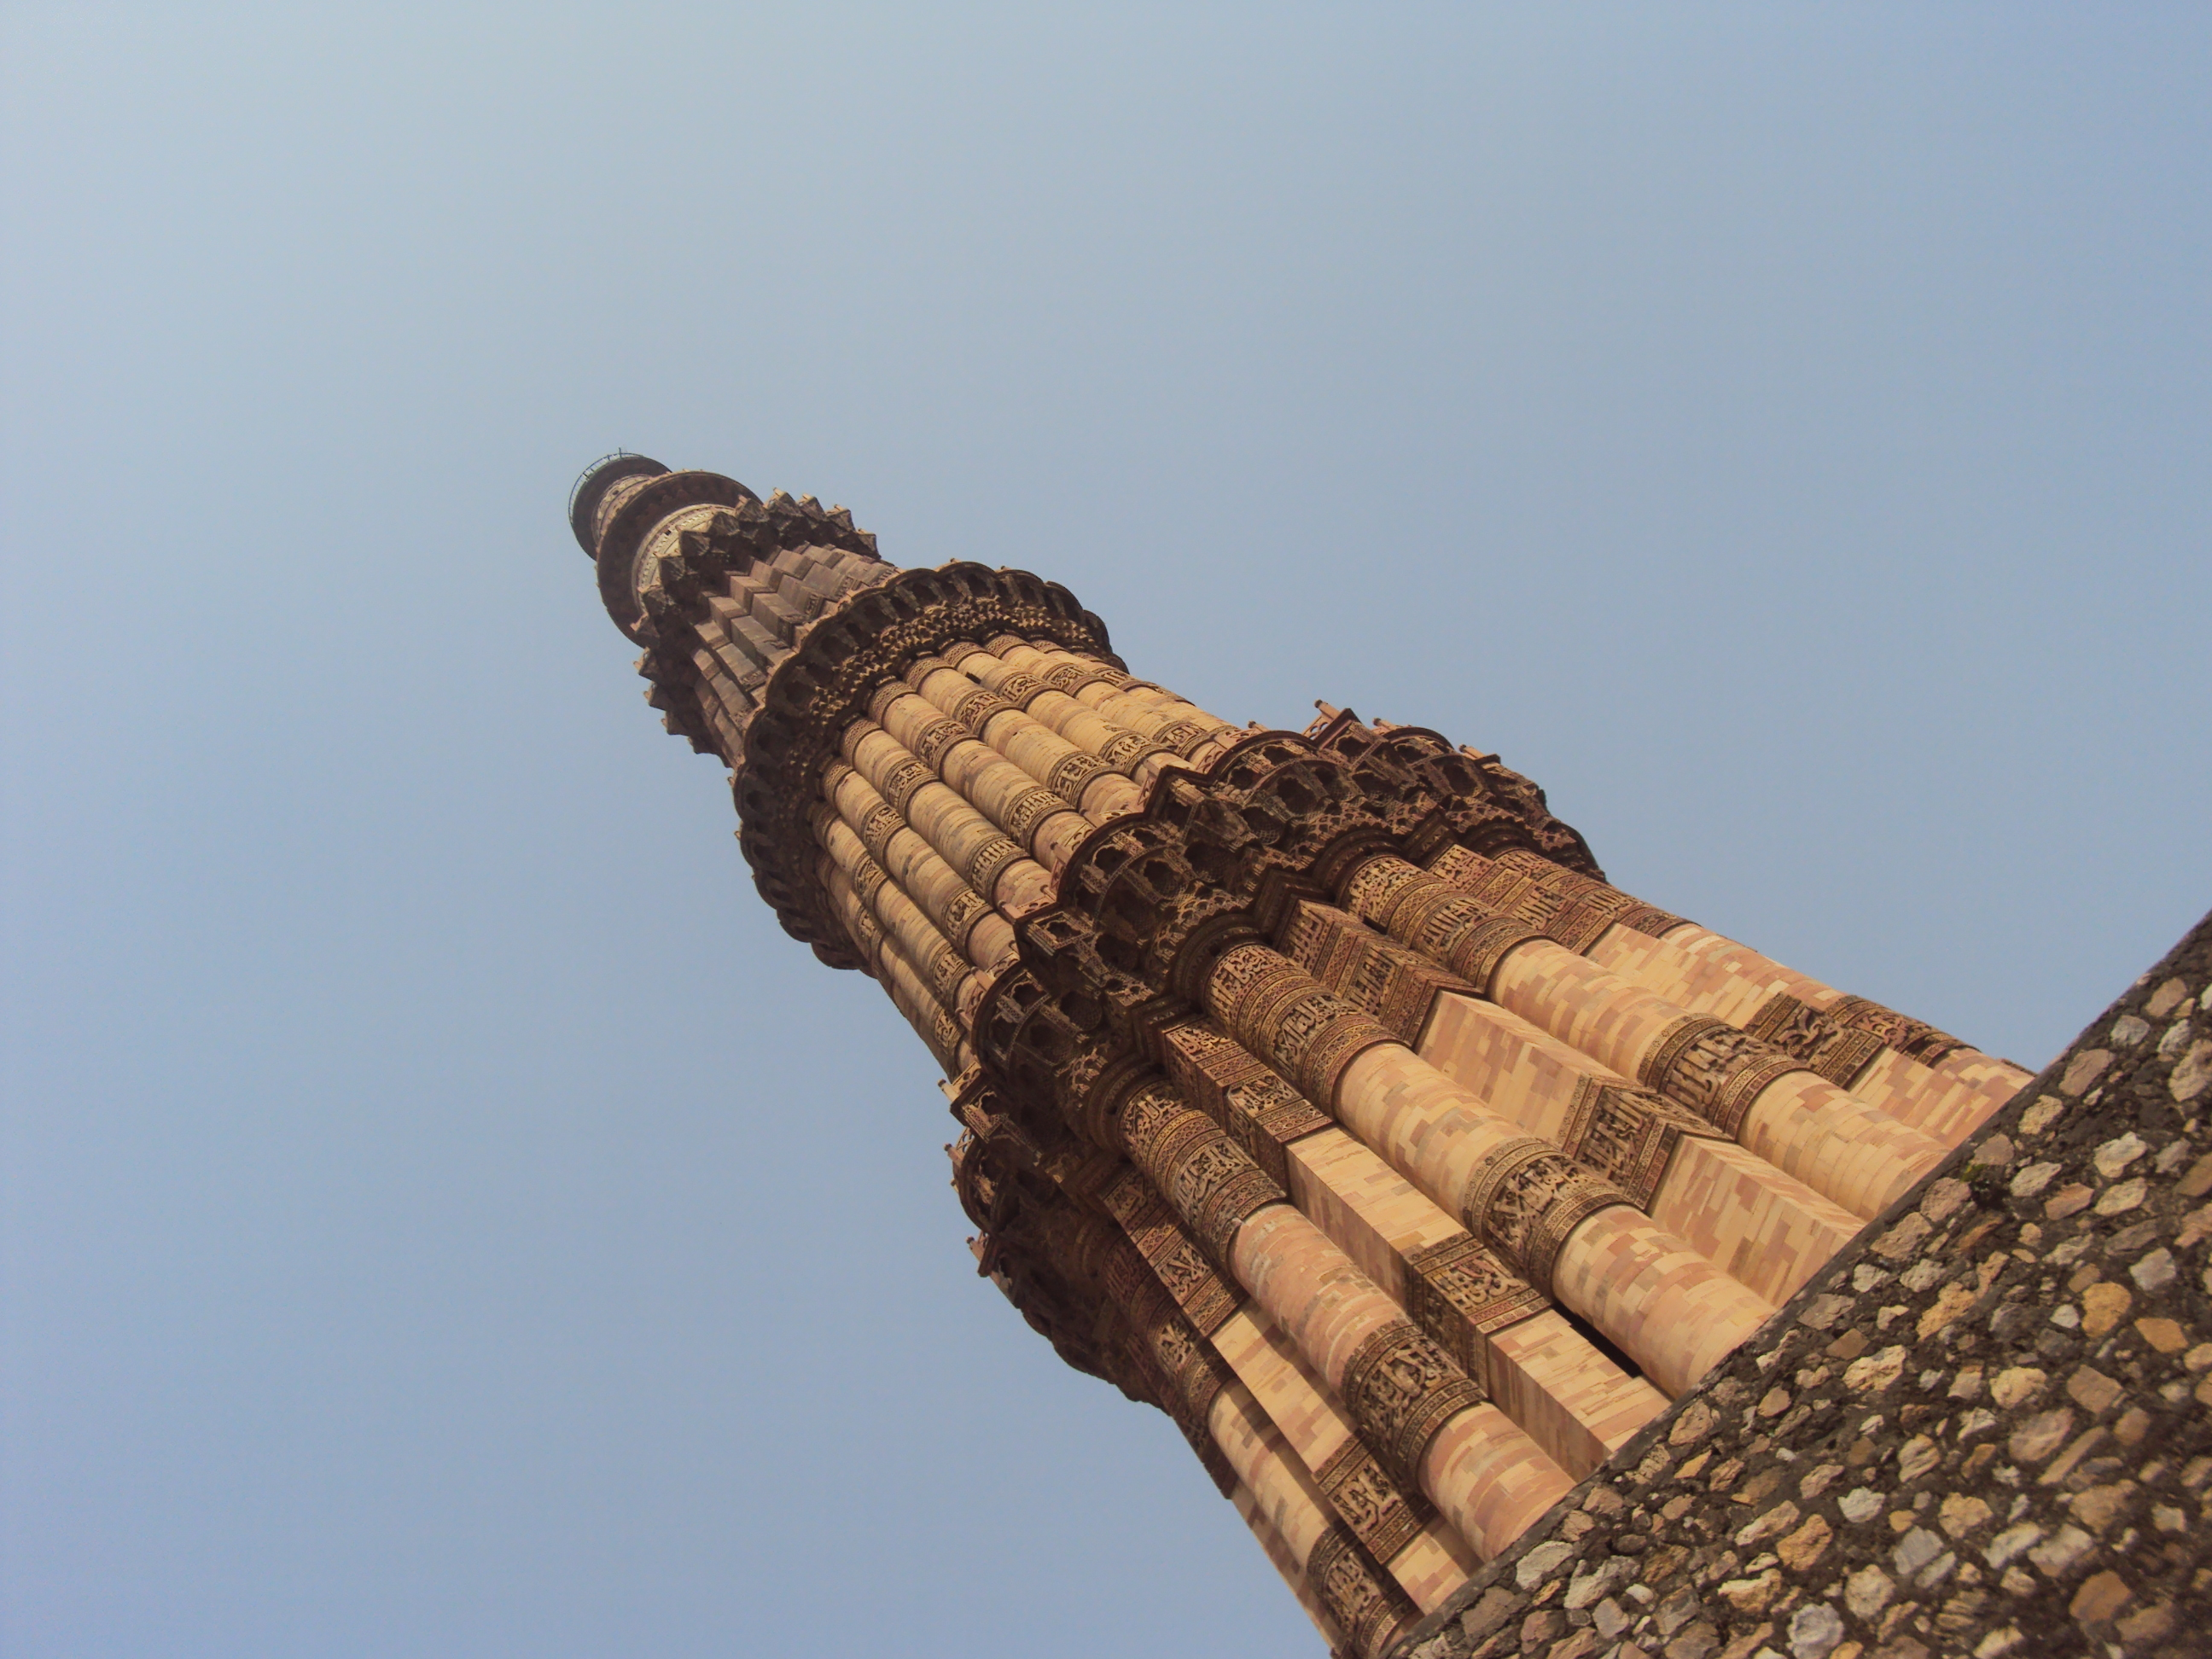 The Top of The World Qutb Minar and its Monuments, Delhi - India By Aakriti Suresh